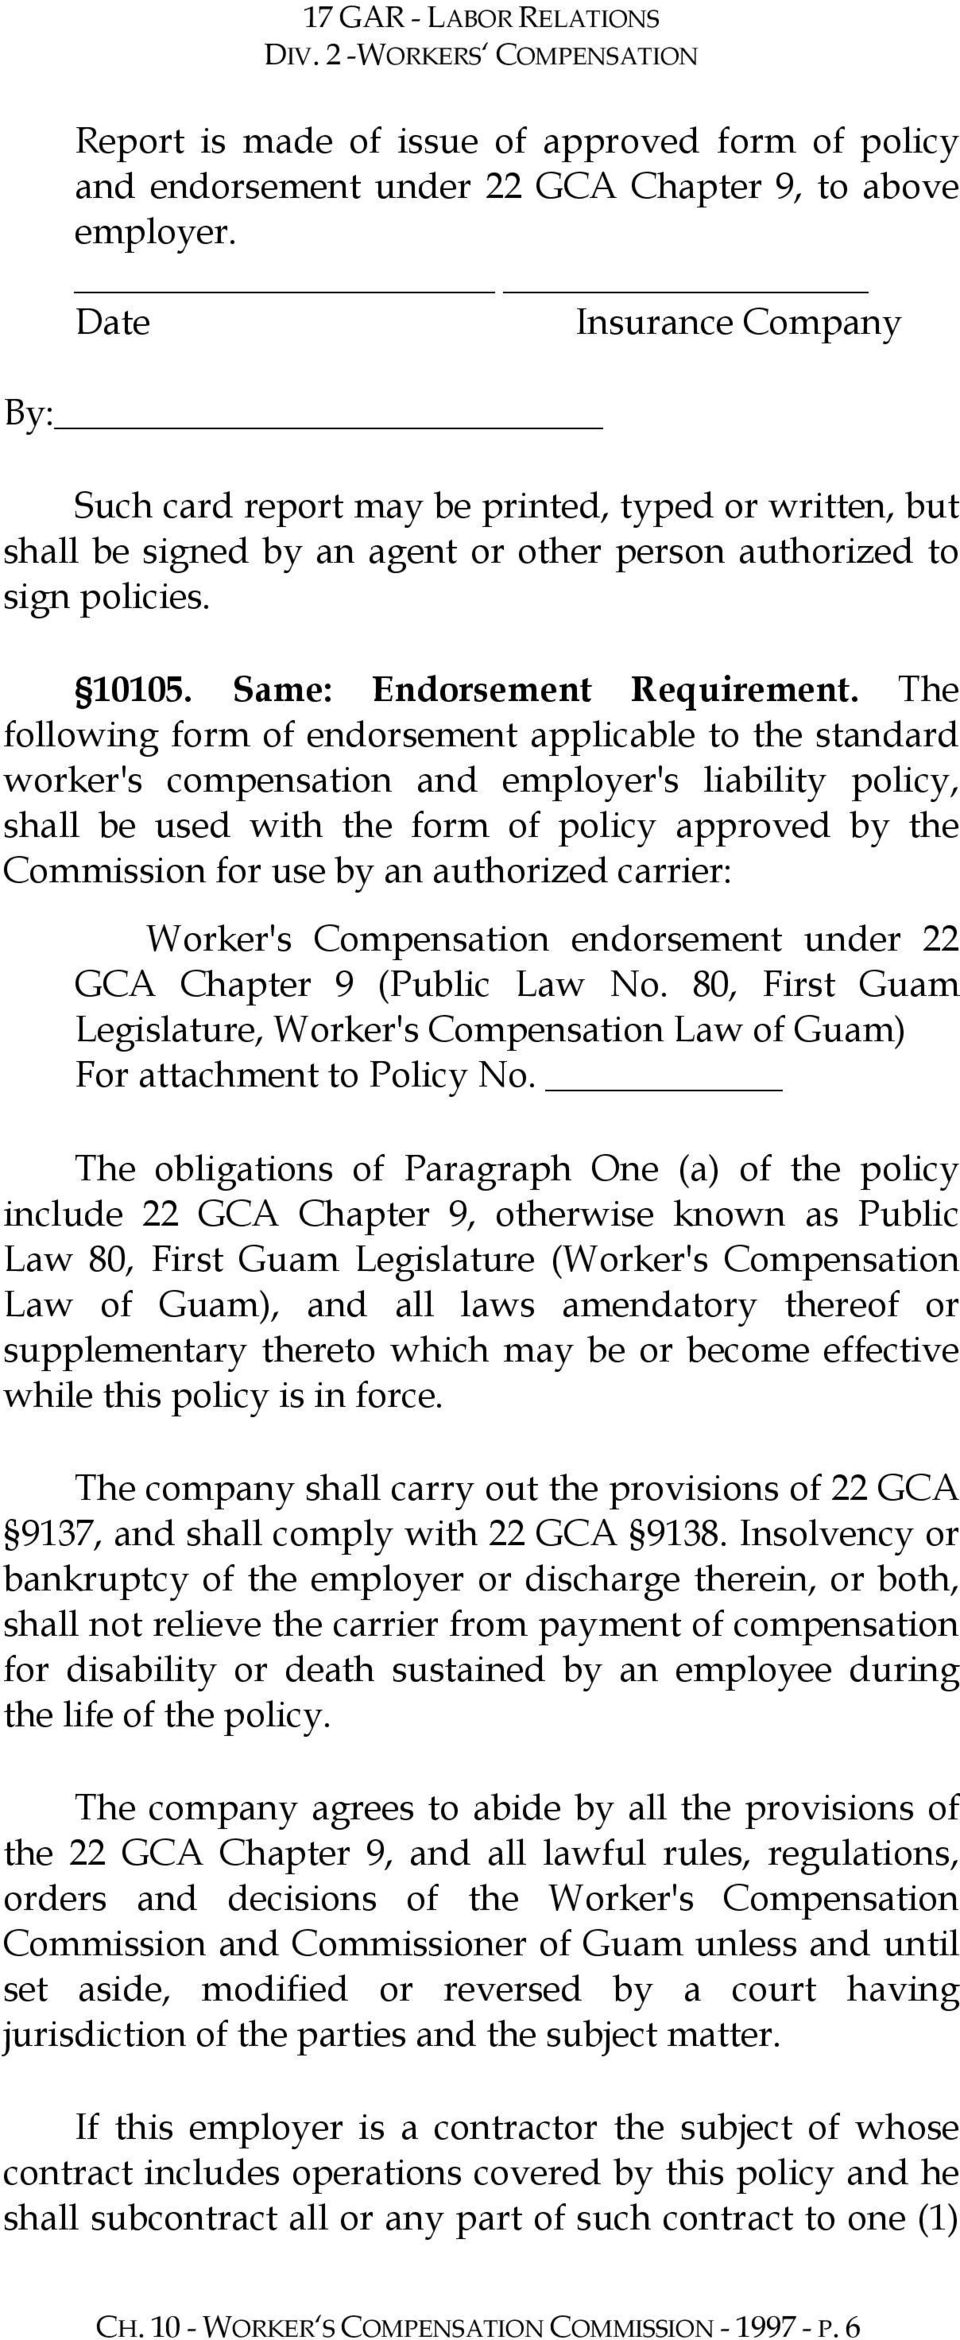 The following form of endorsement applicable to the standard worker's compensation and employer's liability policy, shall be used with the form of policy approved by the Commission for use by an